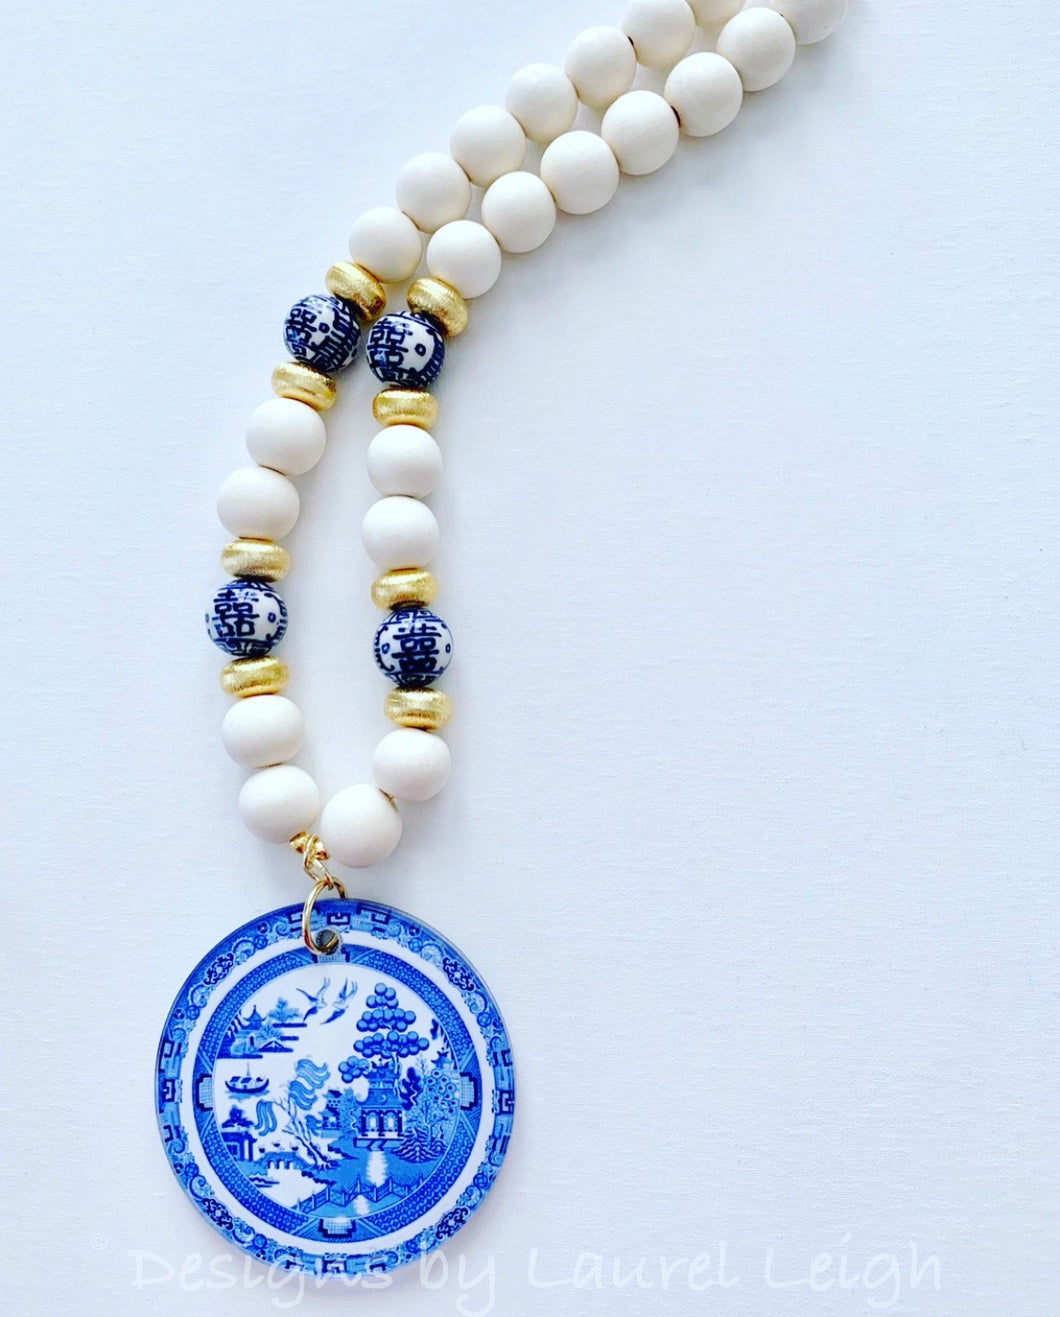 Blue Willow Chinoiserie Double Happiness Pendant Statement Necklace - White - Ginger jar